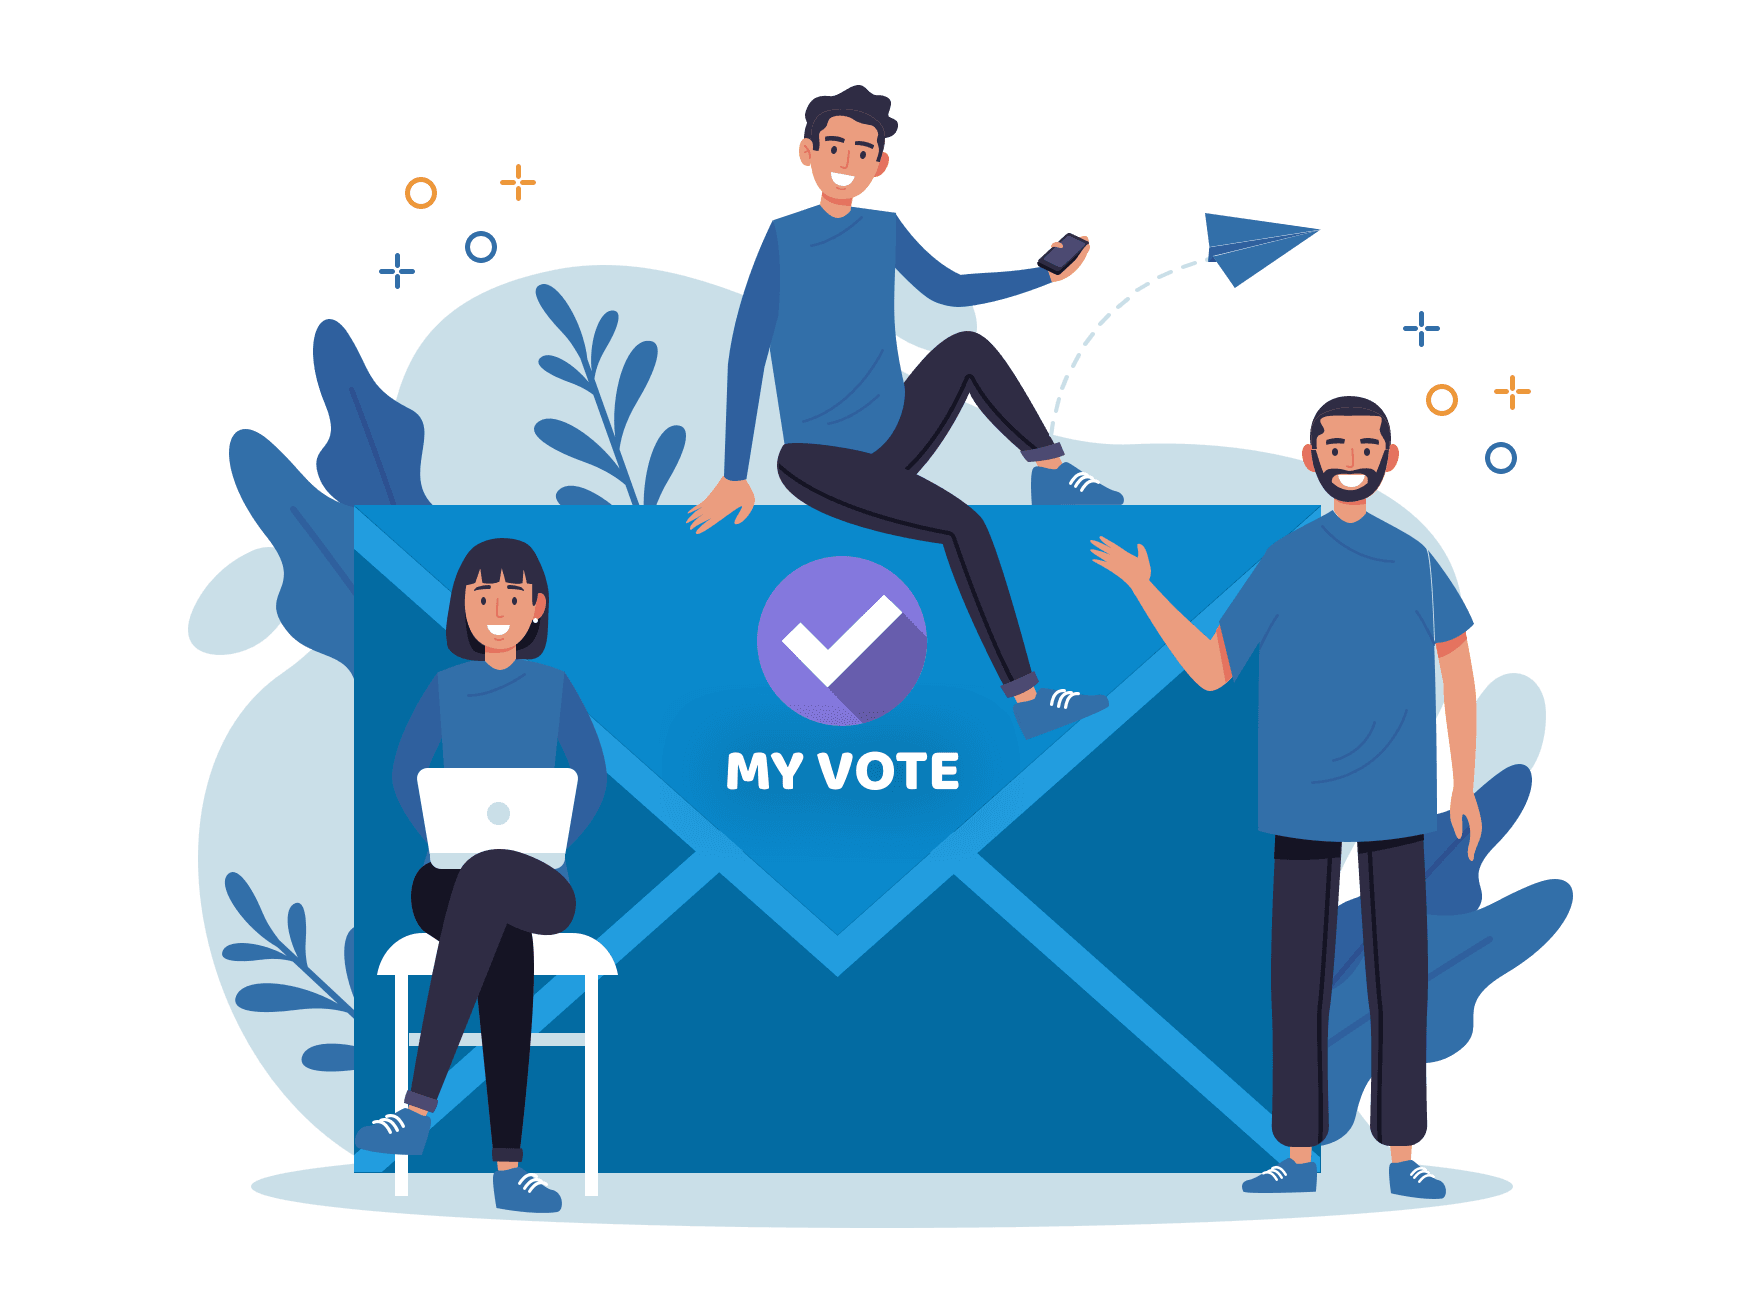 My Vote - How to vote by mail